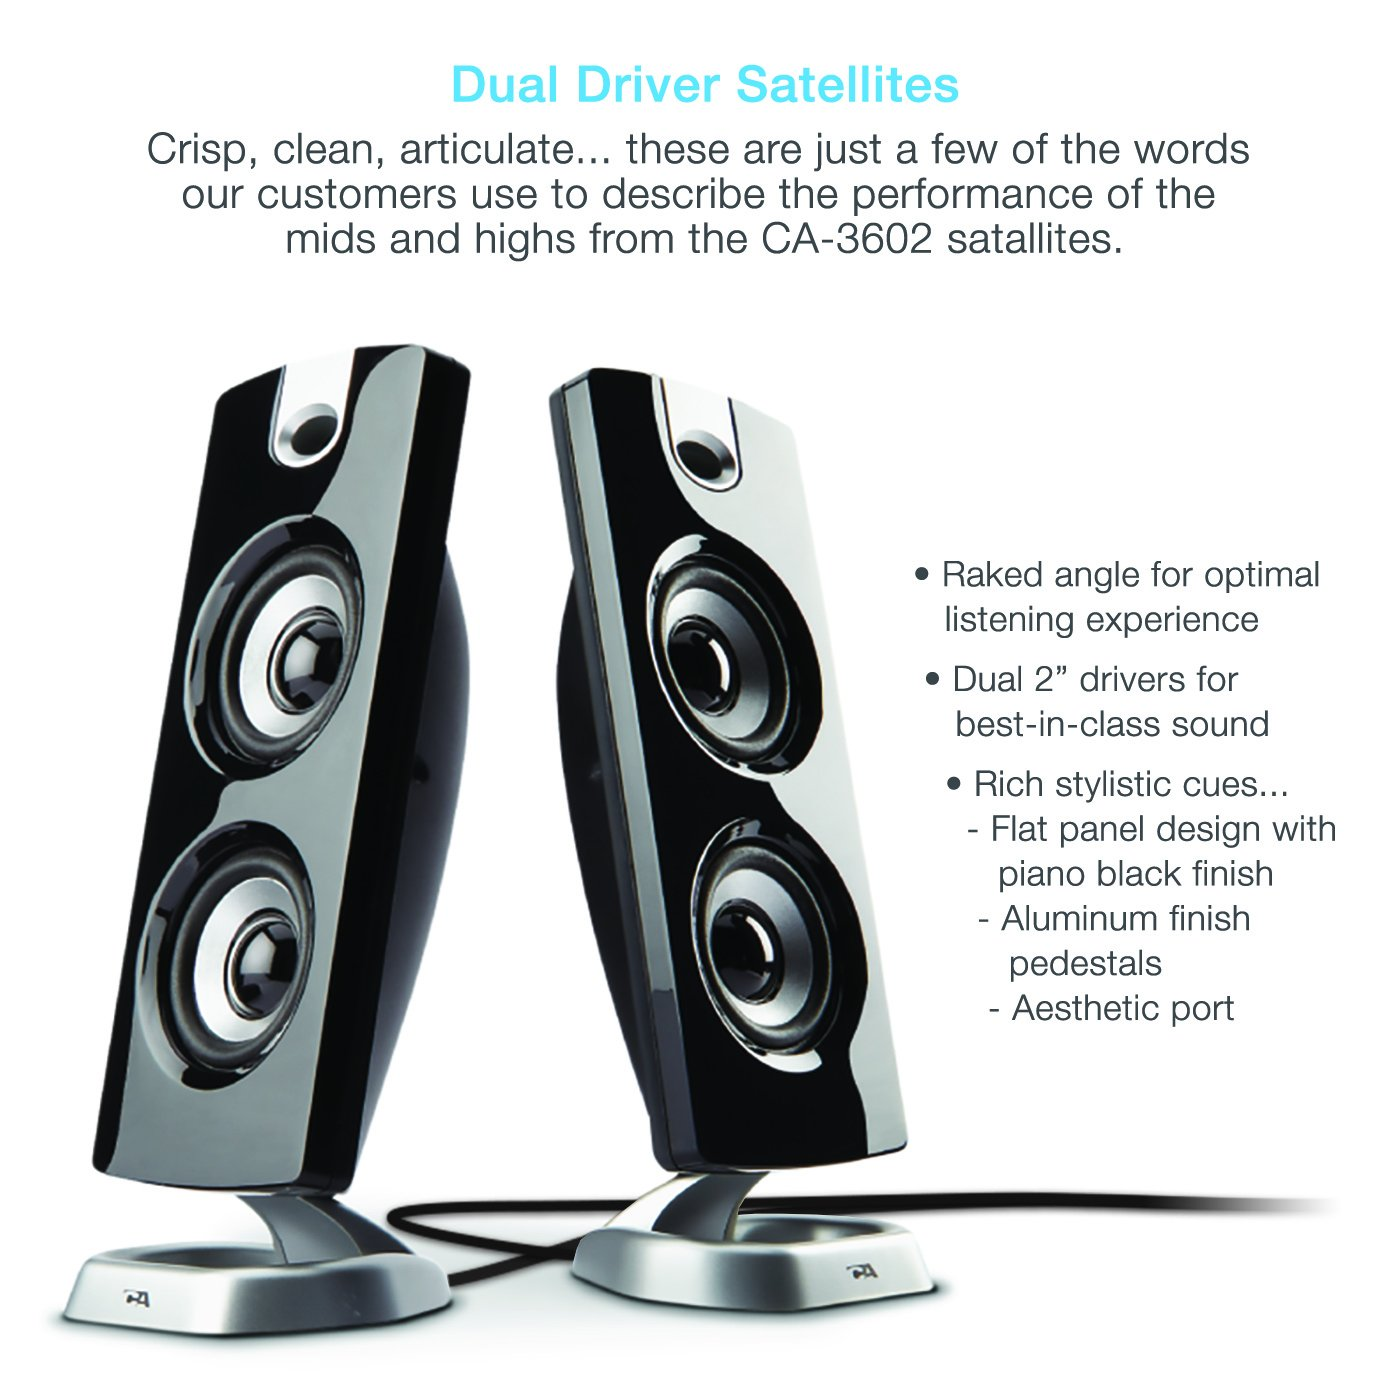 Cyber Acoustics Ca 3602a 62w Desktop Computer Speaker Wiring Speakers For With Subwoofer Perfect 21 Gaming And Multimedia Pc Electronics